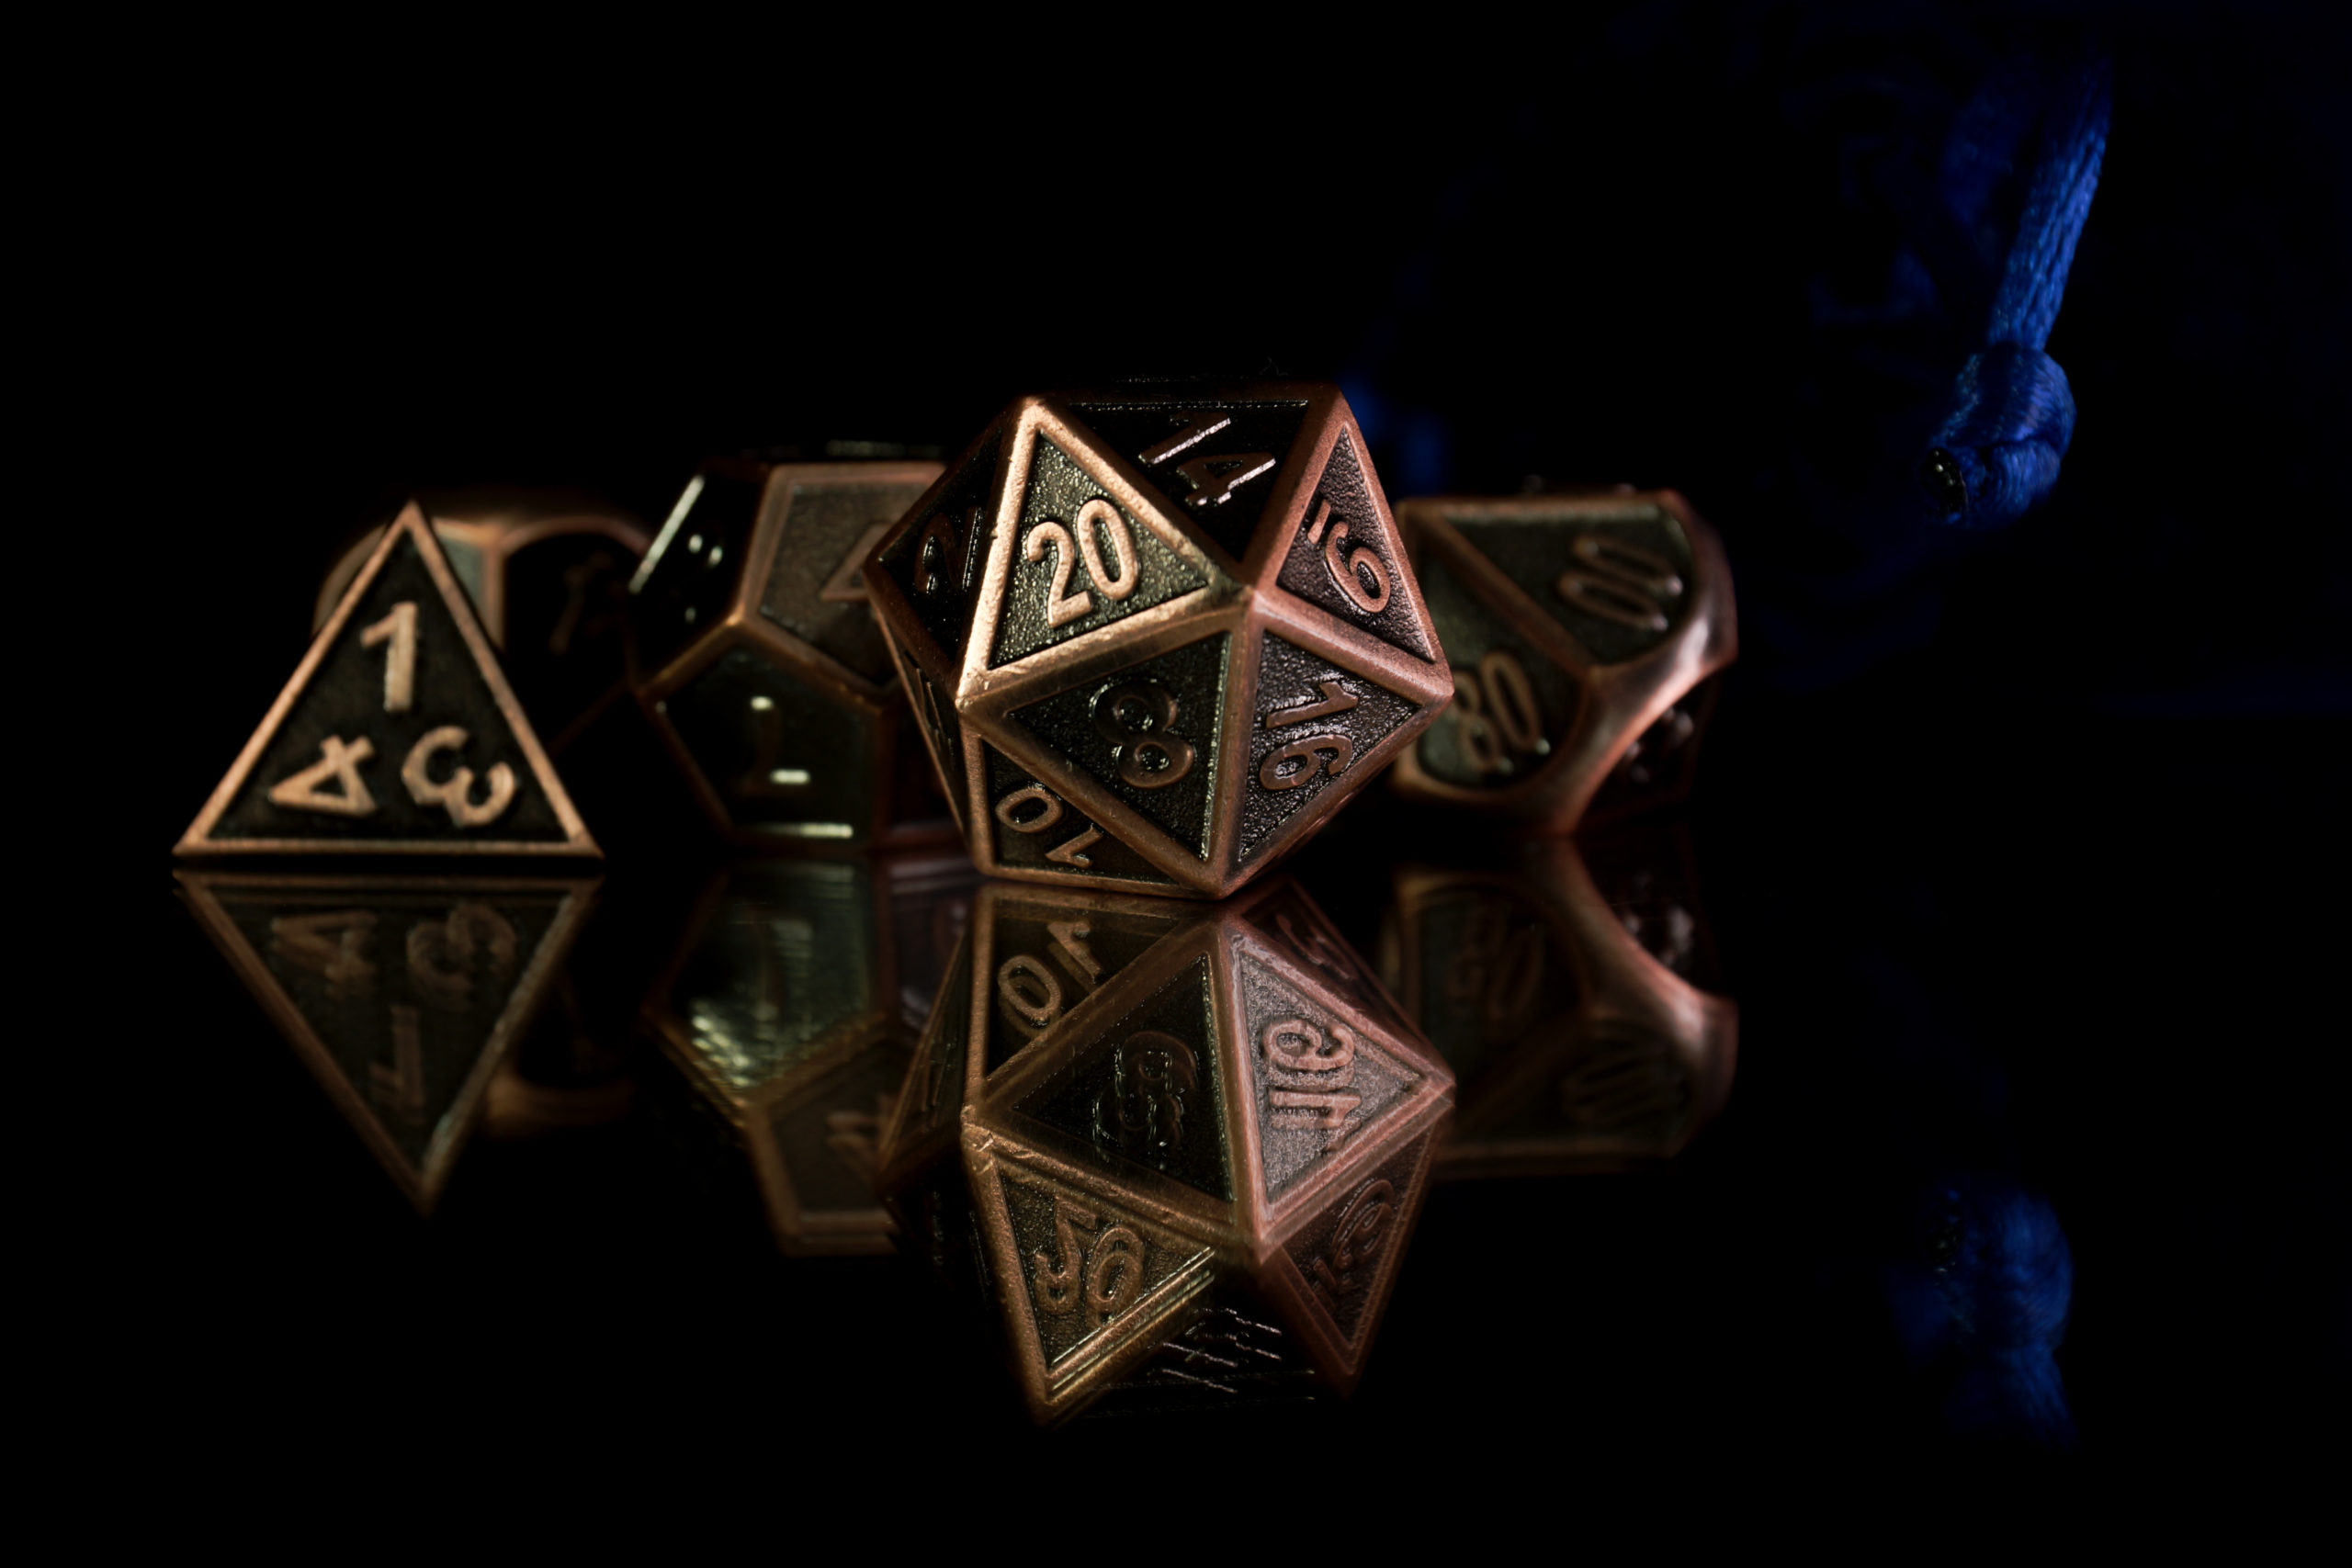 A set of polyhedral dice  with a blue drawstring bag on a mirrored surface. These dice are used for role playing games such as Dungeons & Dragons.